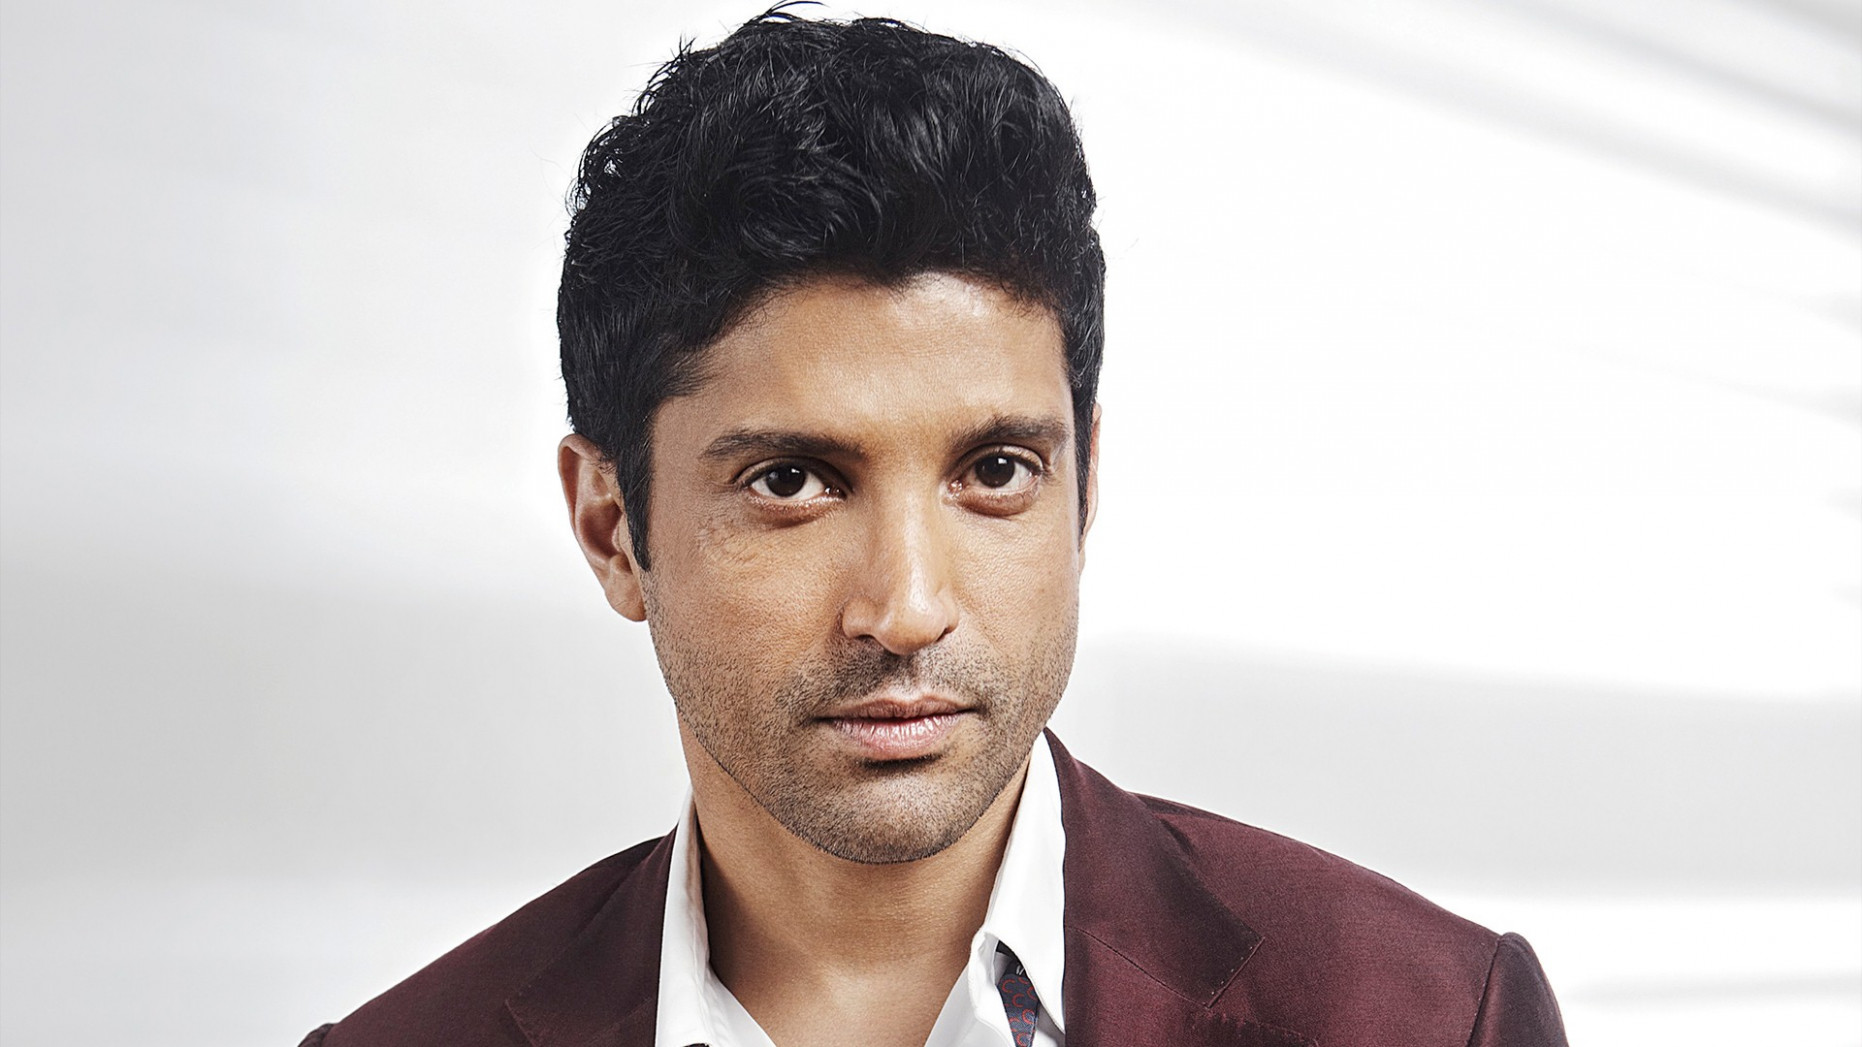 Farhan Akhtar Bollywood Actor HD Wallpapers | HD Wallpapers